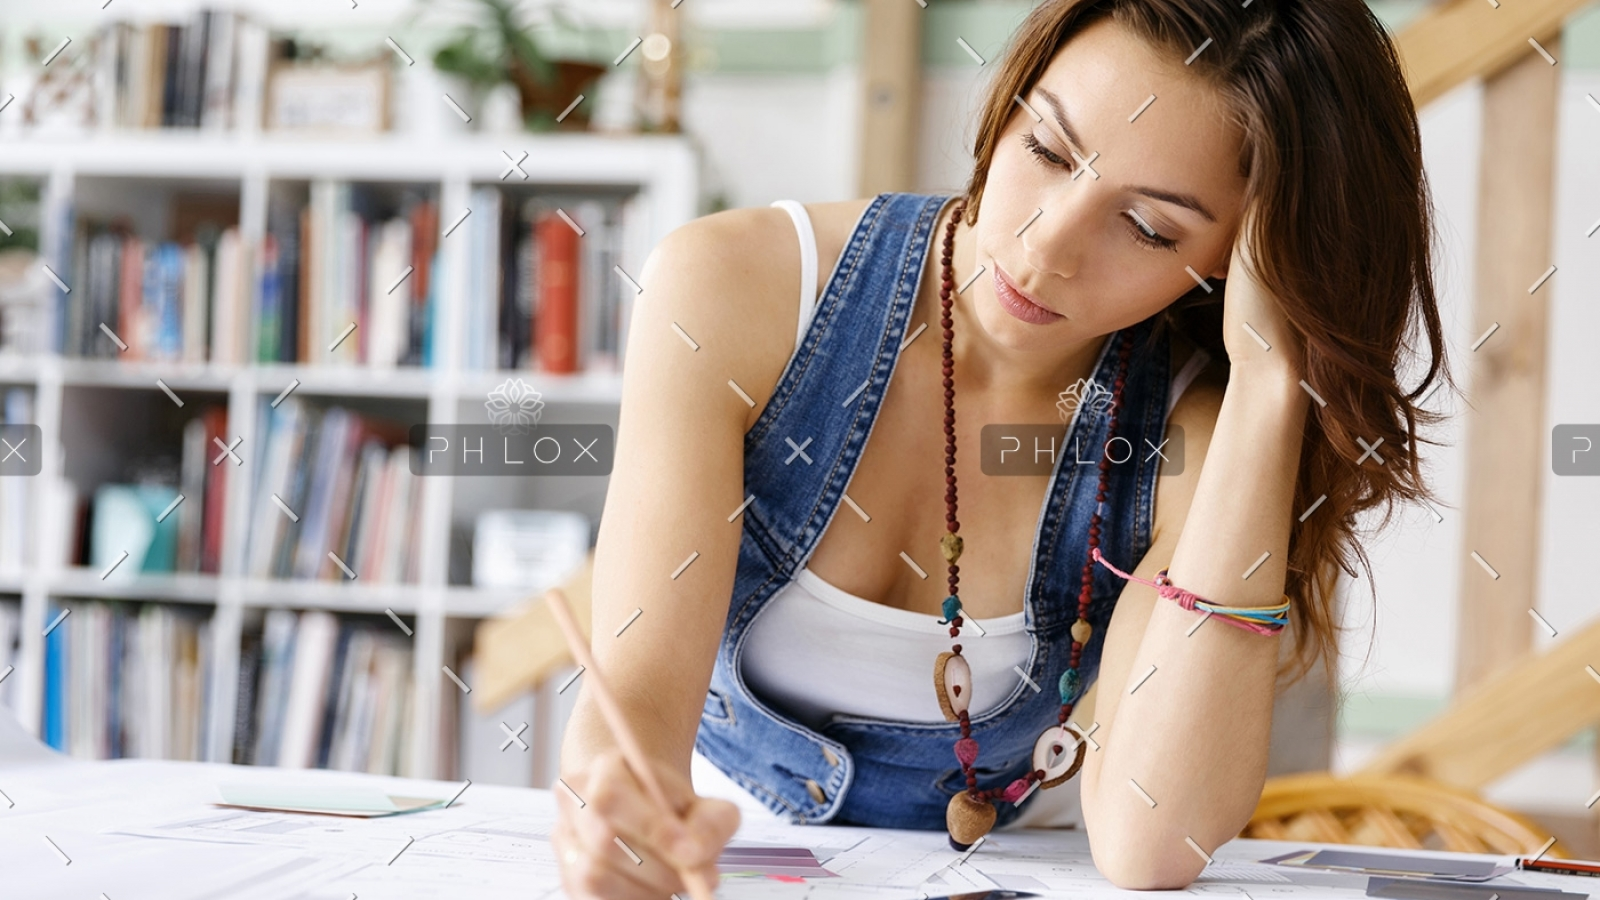 young-pretty-woman-at-her-desk-PDDLFRL-1